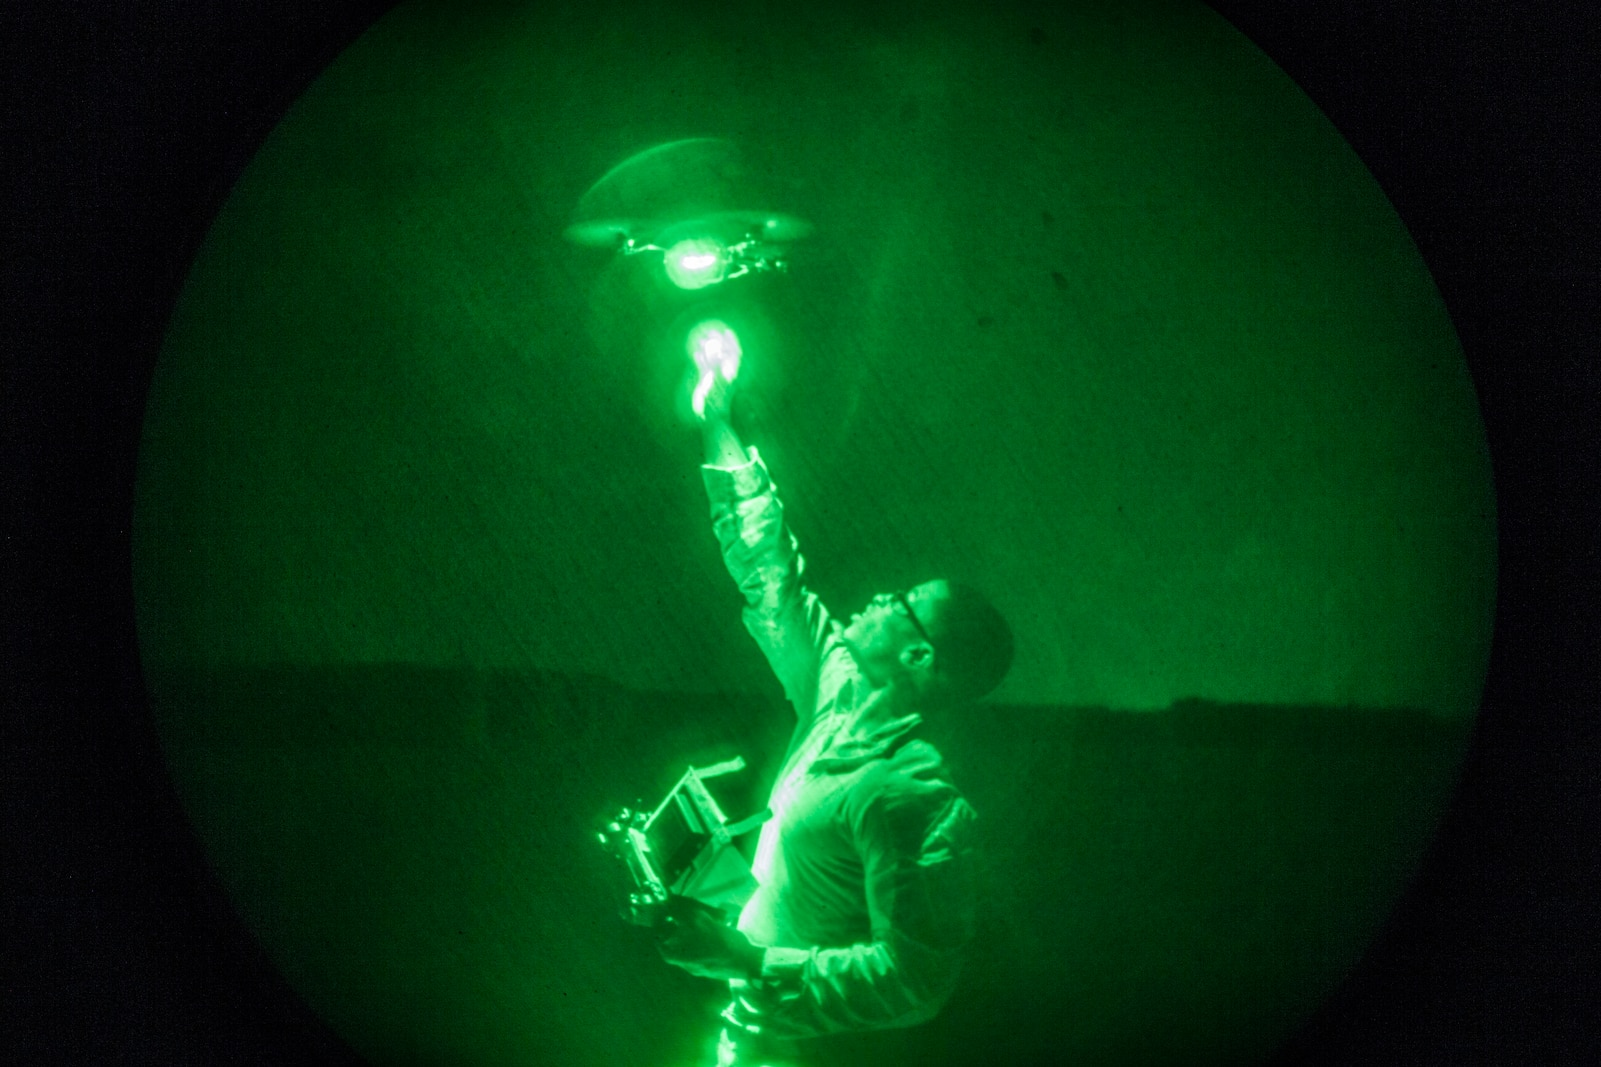 UNDISCLOSED LOCATION, SOUTHWEST ASIA – U.S. Marine Corps Cpl. Justin Johnson, an intelligence analyst with 3rd Battalion 7th Marine Regiment attached to Special Purpose Marine Air-Ground Task Force, Crisis Response-Central Command (SPMAGTF-CR-CC), recovers an Instant Eye quadcopter system out of the night sky July 27, 2018. SPMAGTF-CR-CC Marines regularly support Task Force Spartan, whose mission is to advise and assist Iraqi forces in the Ramadi area. (U.S. Marine Corps photo by Cpl. Gabino Perez)